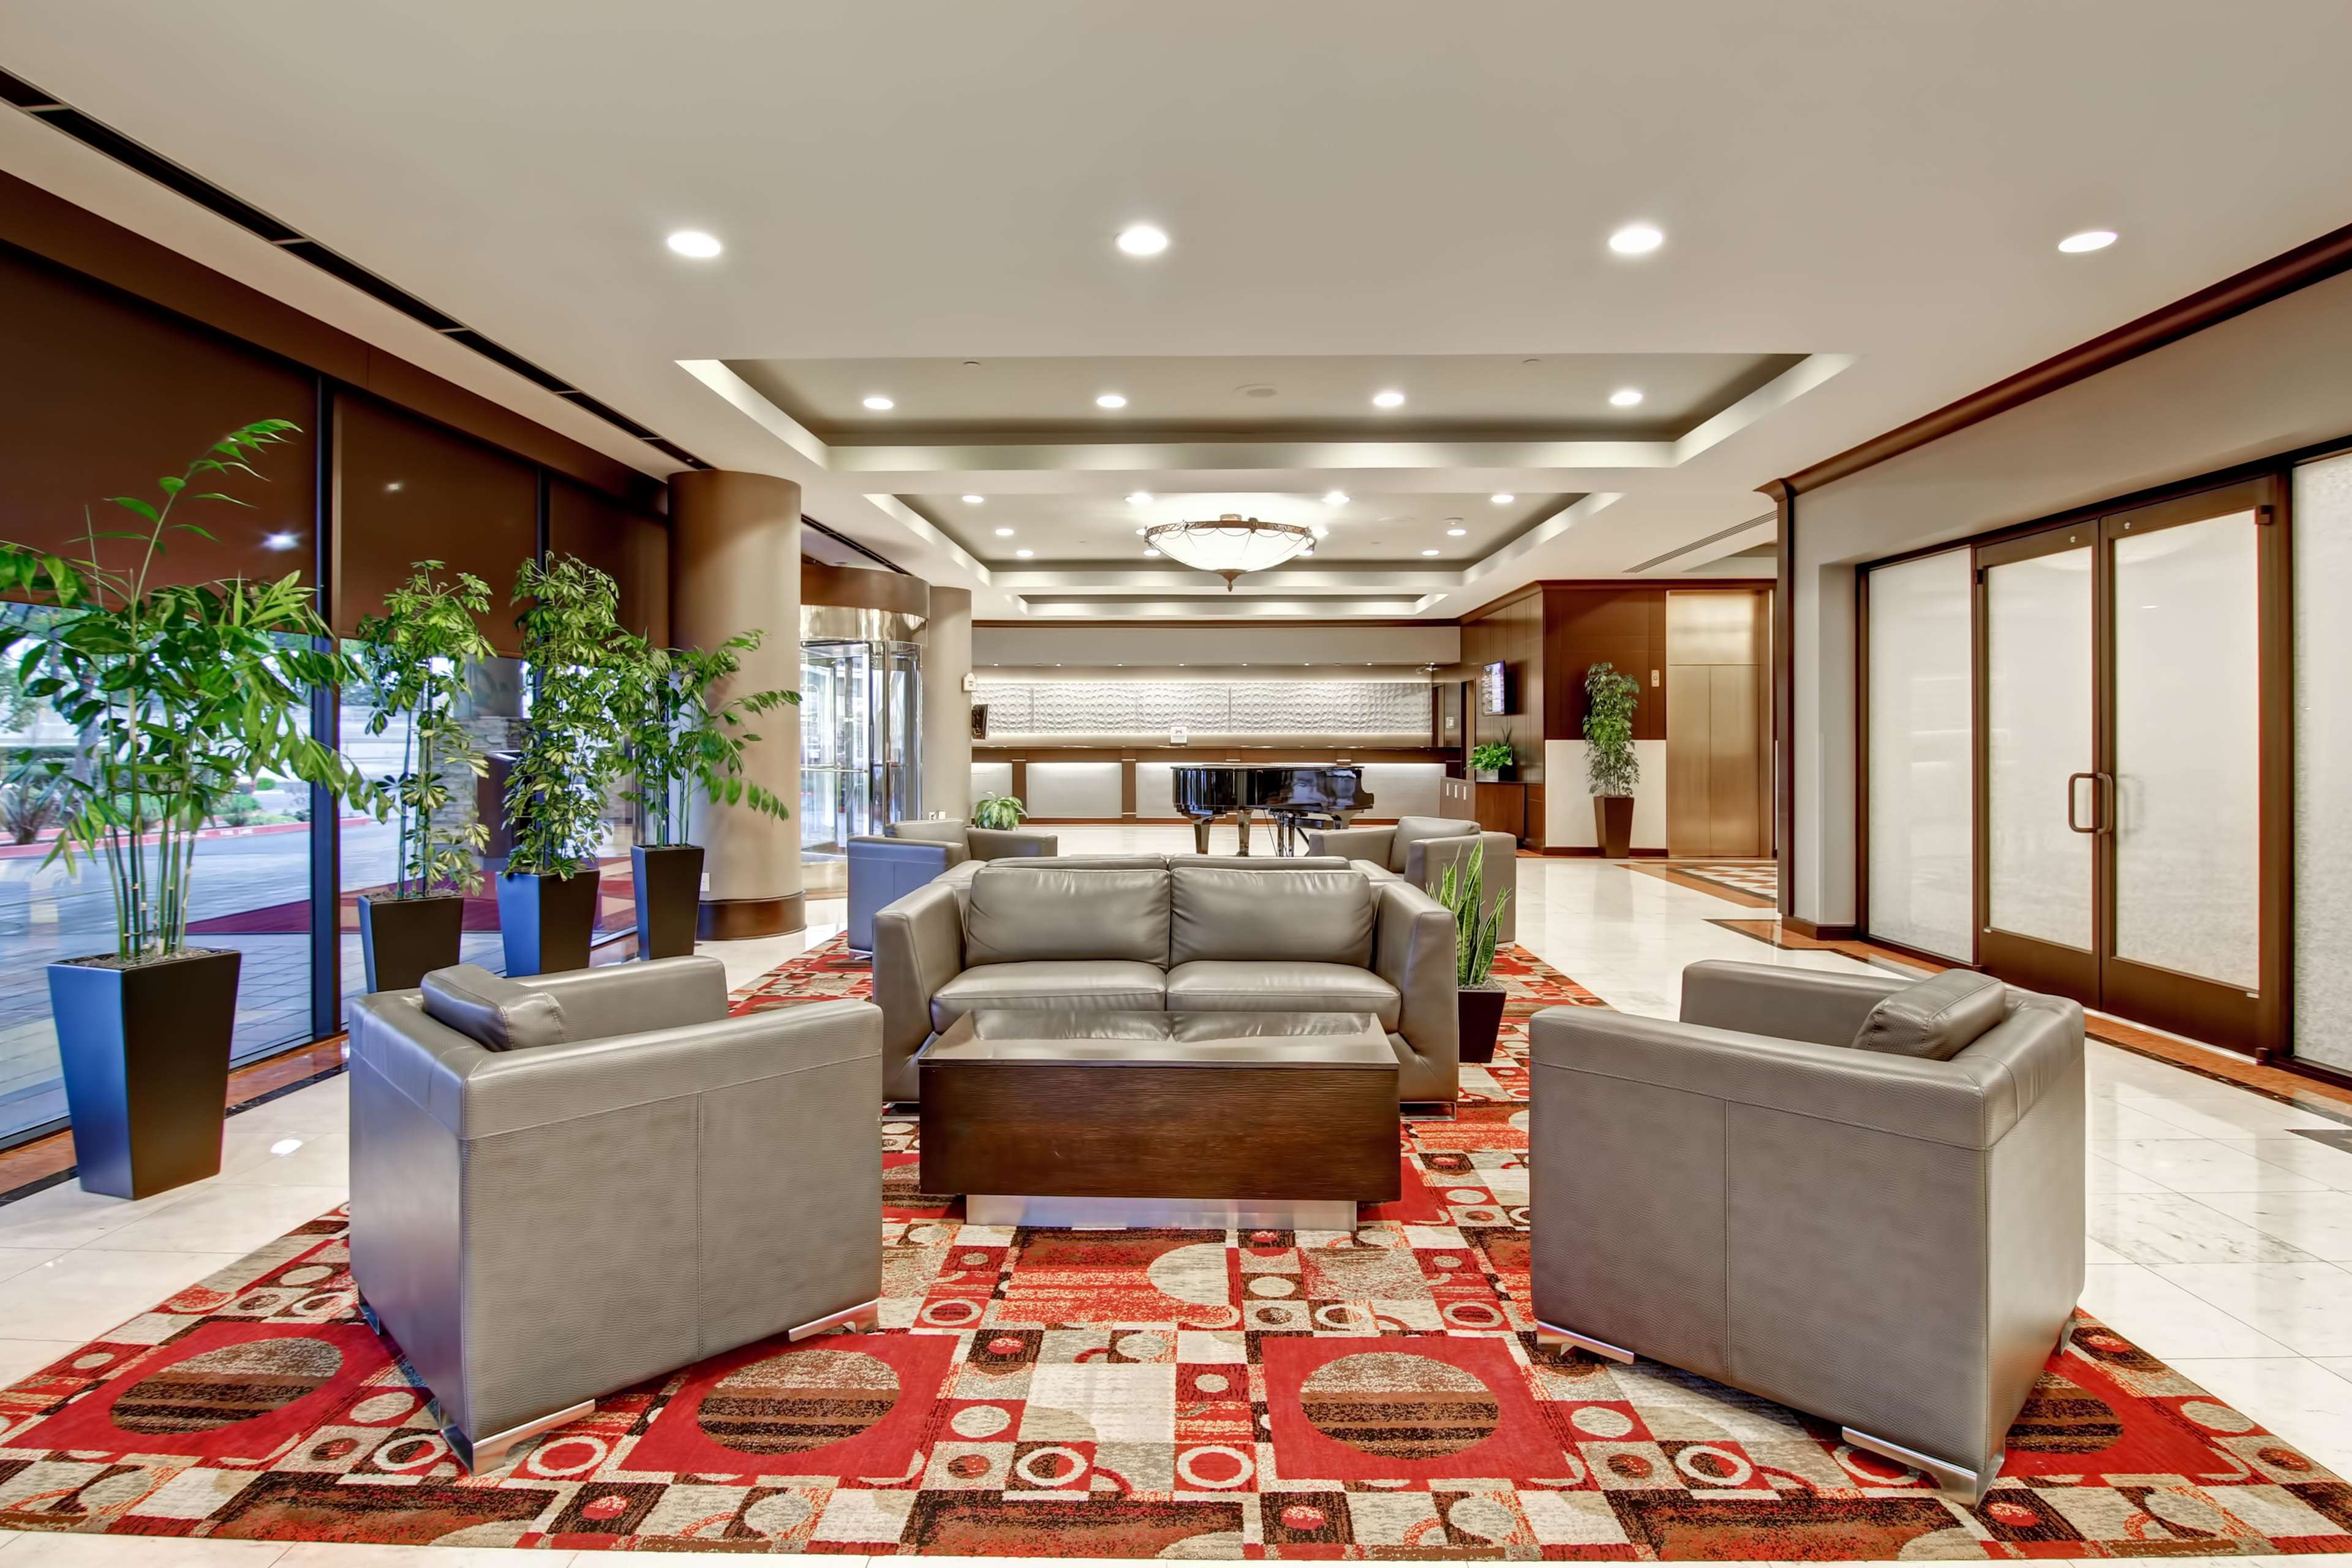 DoubleTree by Hilton Hotel Pleasanton at the Club image 2